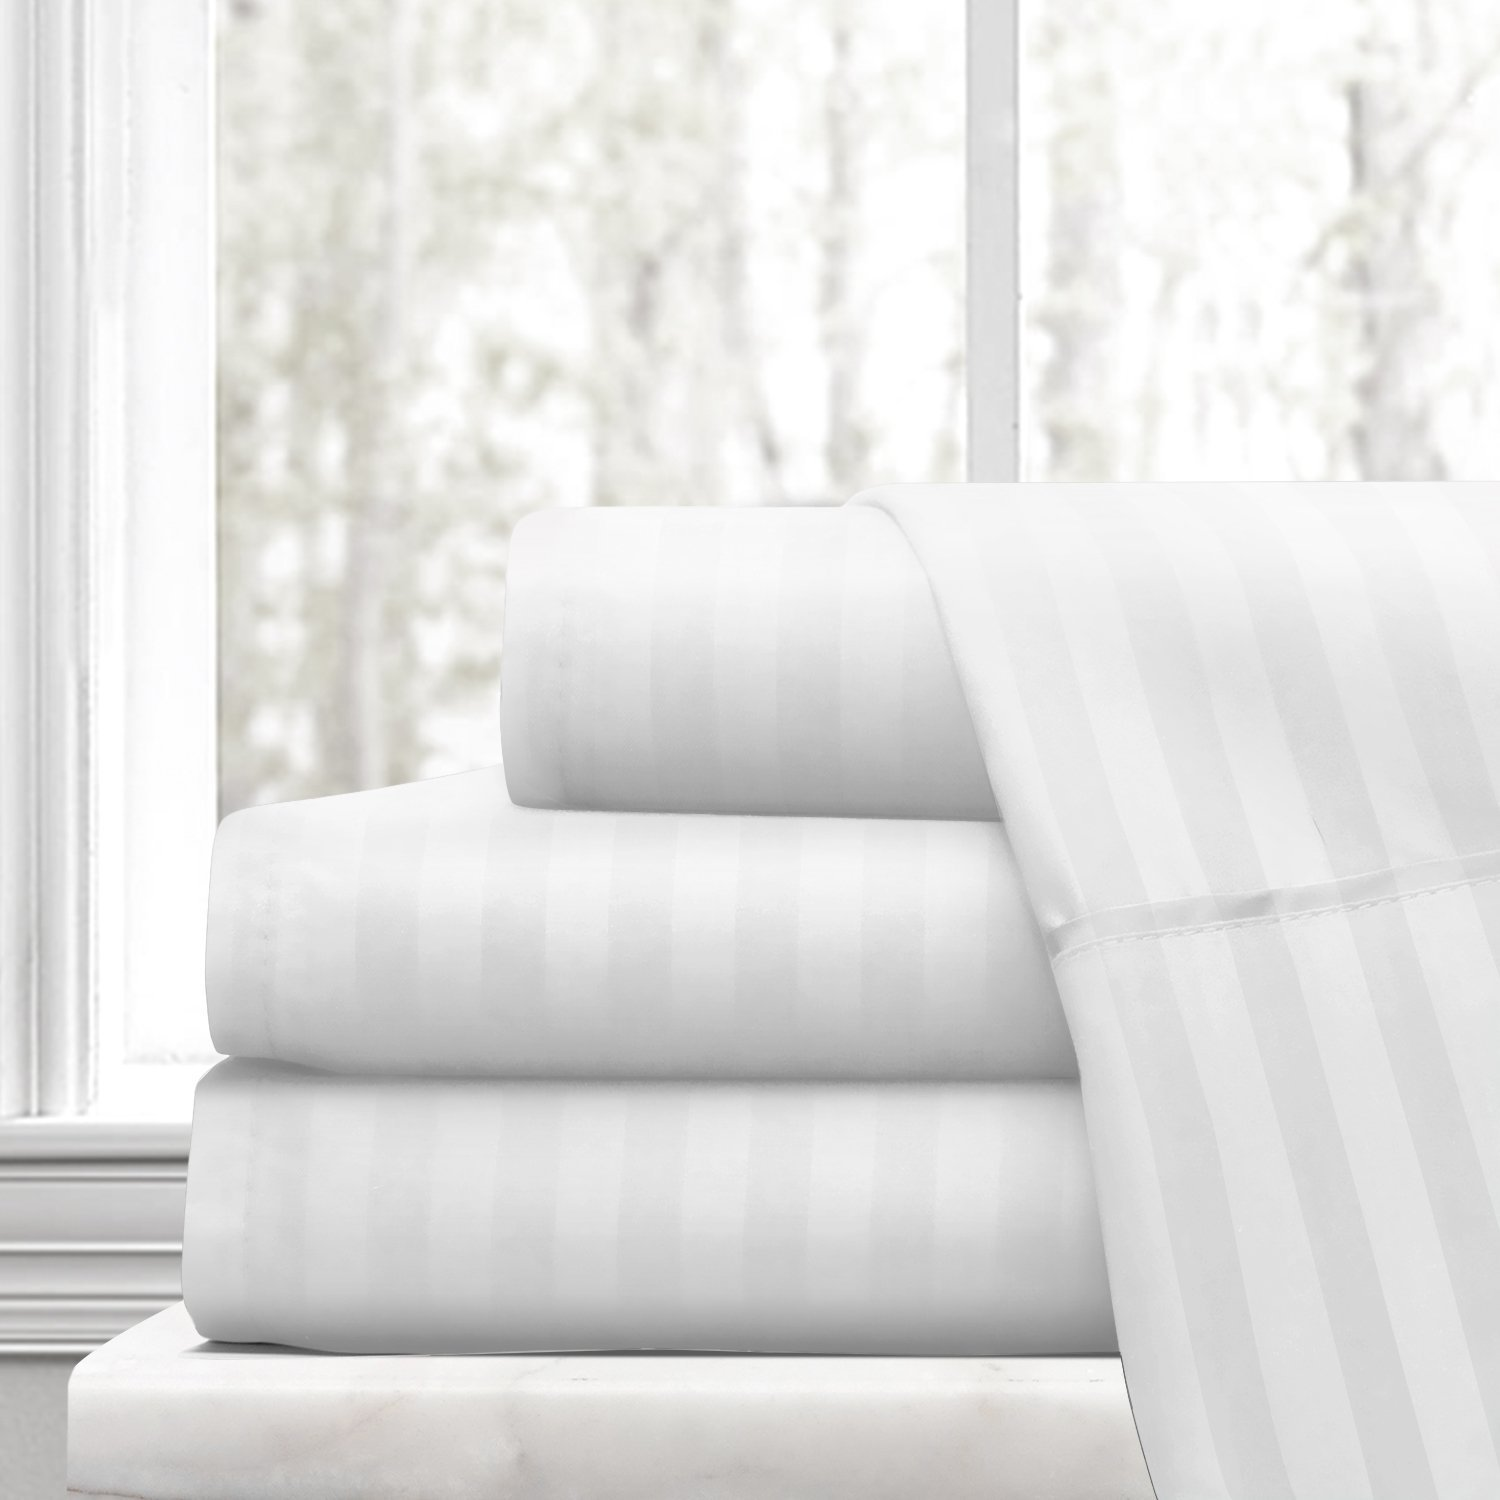 Beckham Hotel Collection Luxury Soft Brushed Microfiber 4-Piece Striped Sheet Set - Hypoallergenic & Stain Resistant with Embossed Stripes - Twin - White